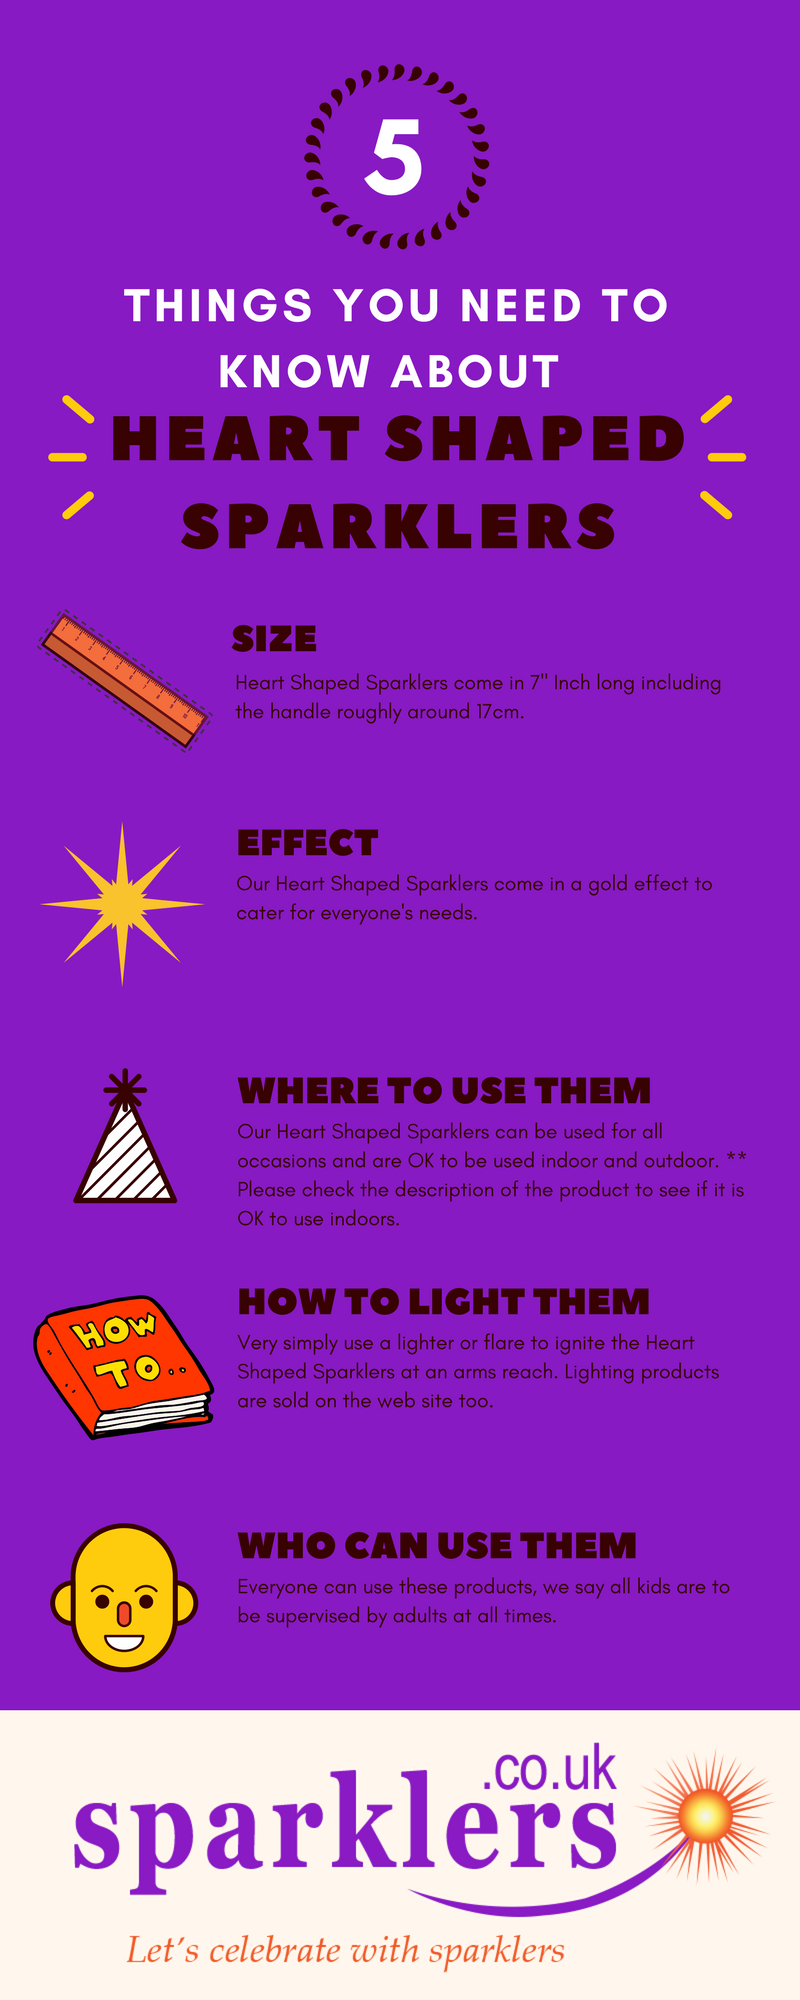 Heart-Shaped-Sparklers-info-graphic